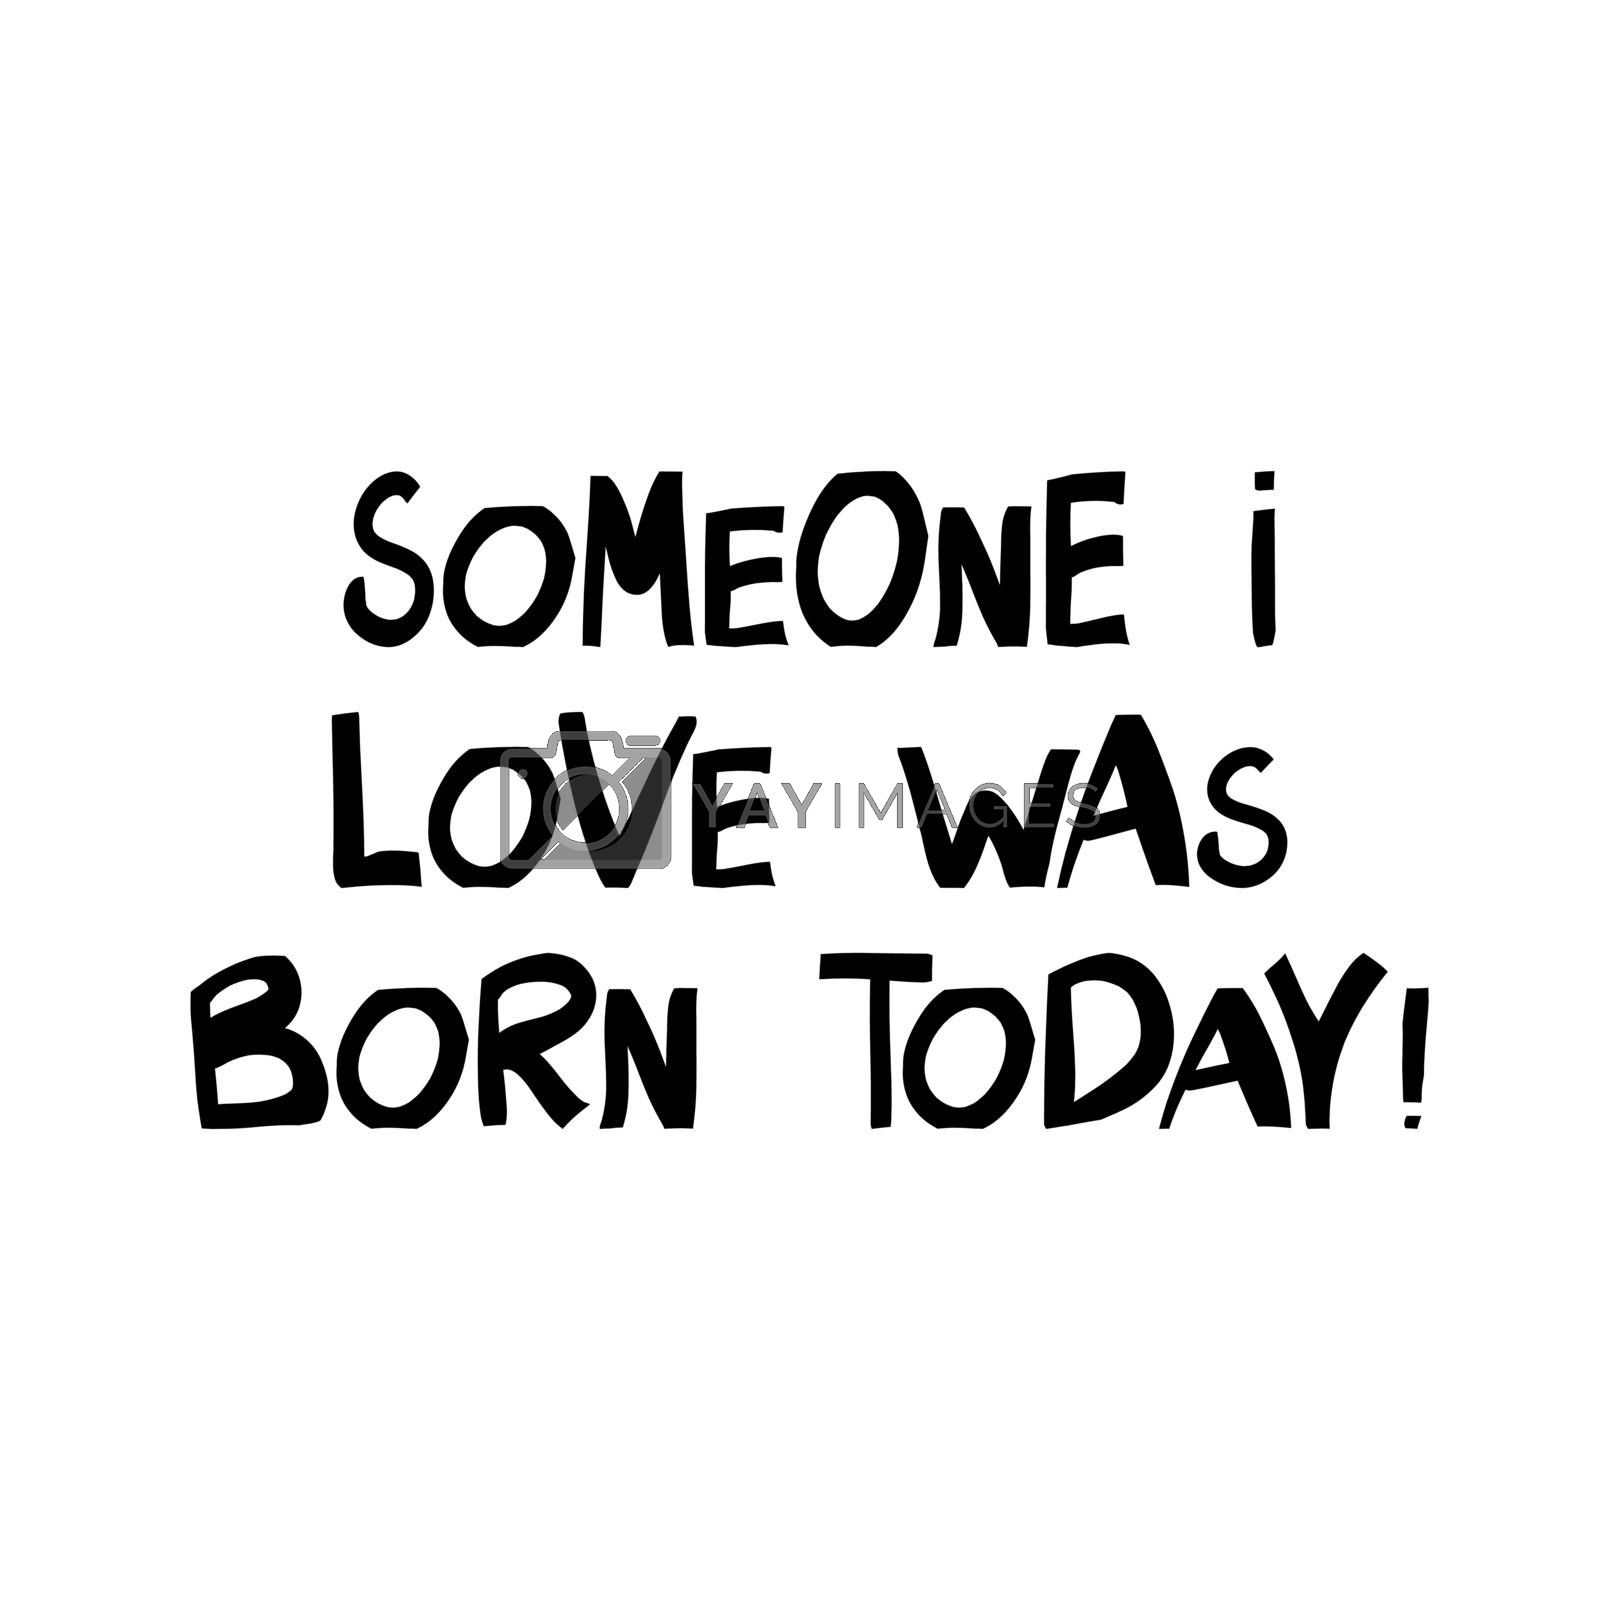 Someone i love was born today. Cute hand drawn lettering in modern scandinavian style. Isolated on white. Vector stock illustration.